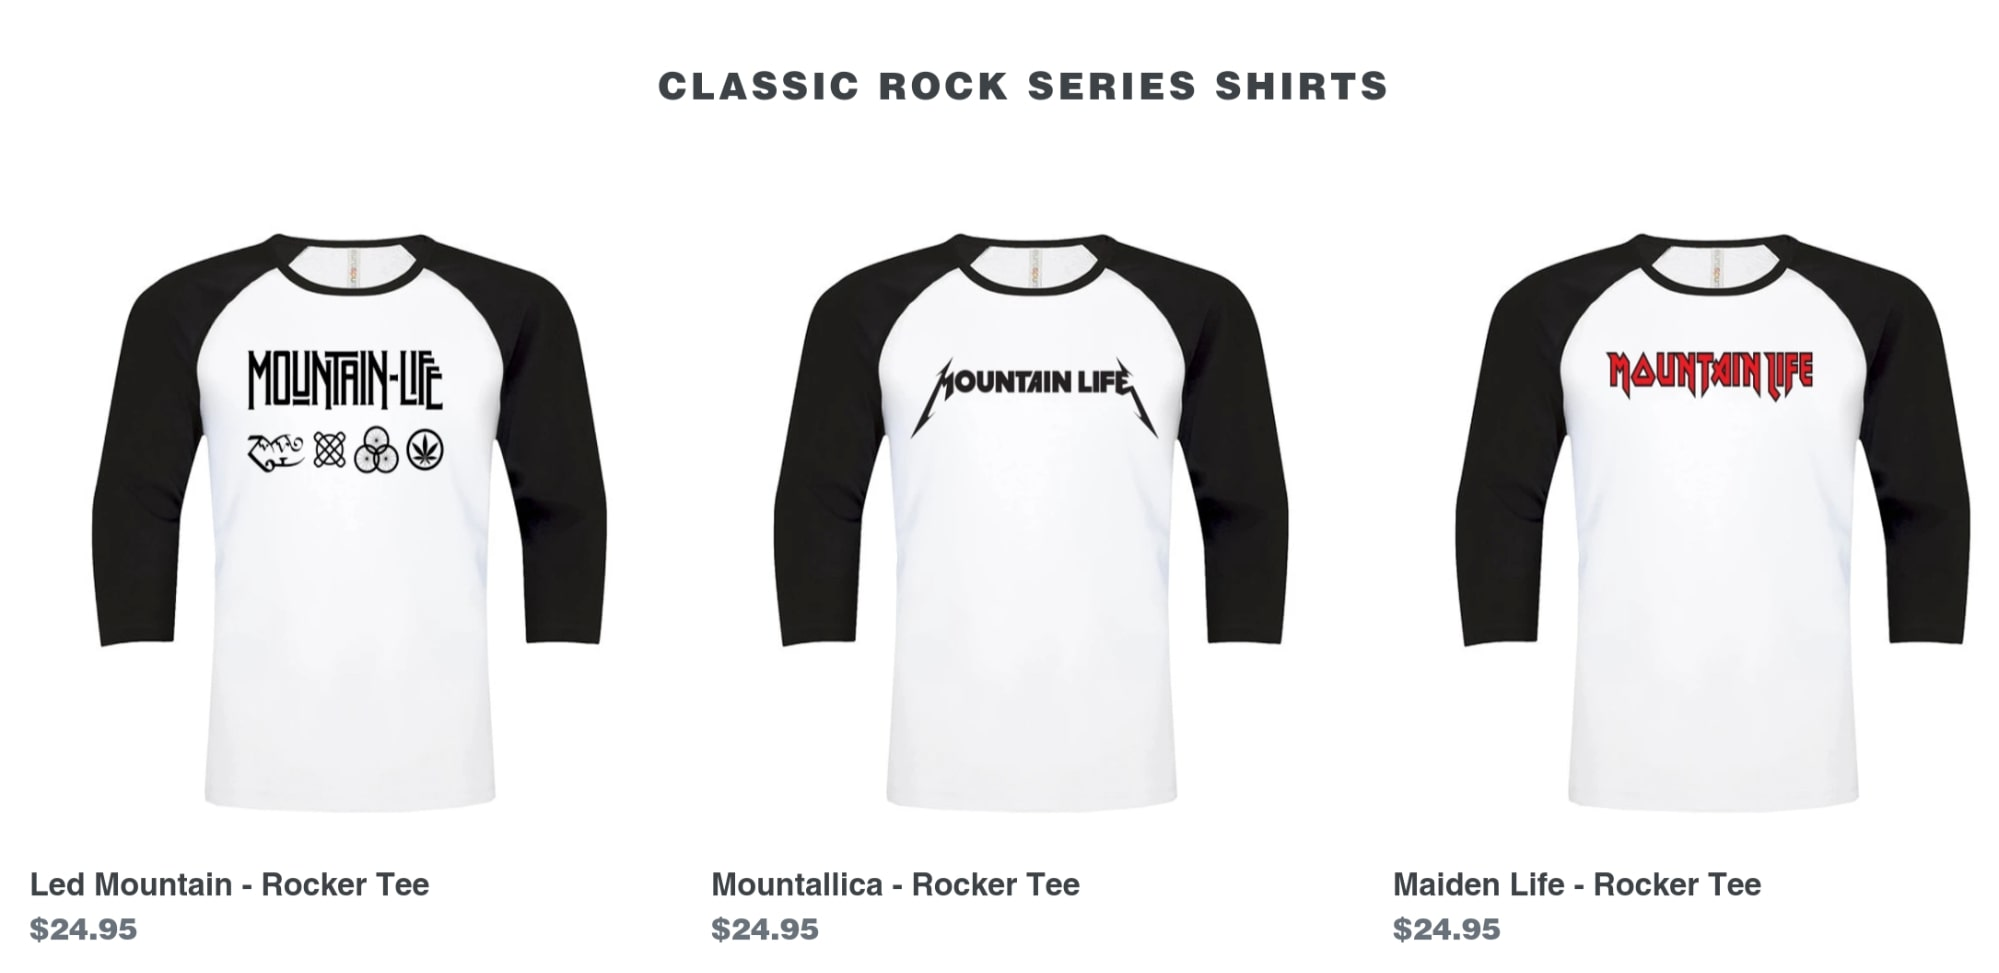 Cue-Flaming-Guitar-Solo-Mountain-Life-T-Shirts-Rock-Series